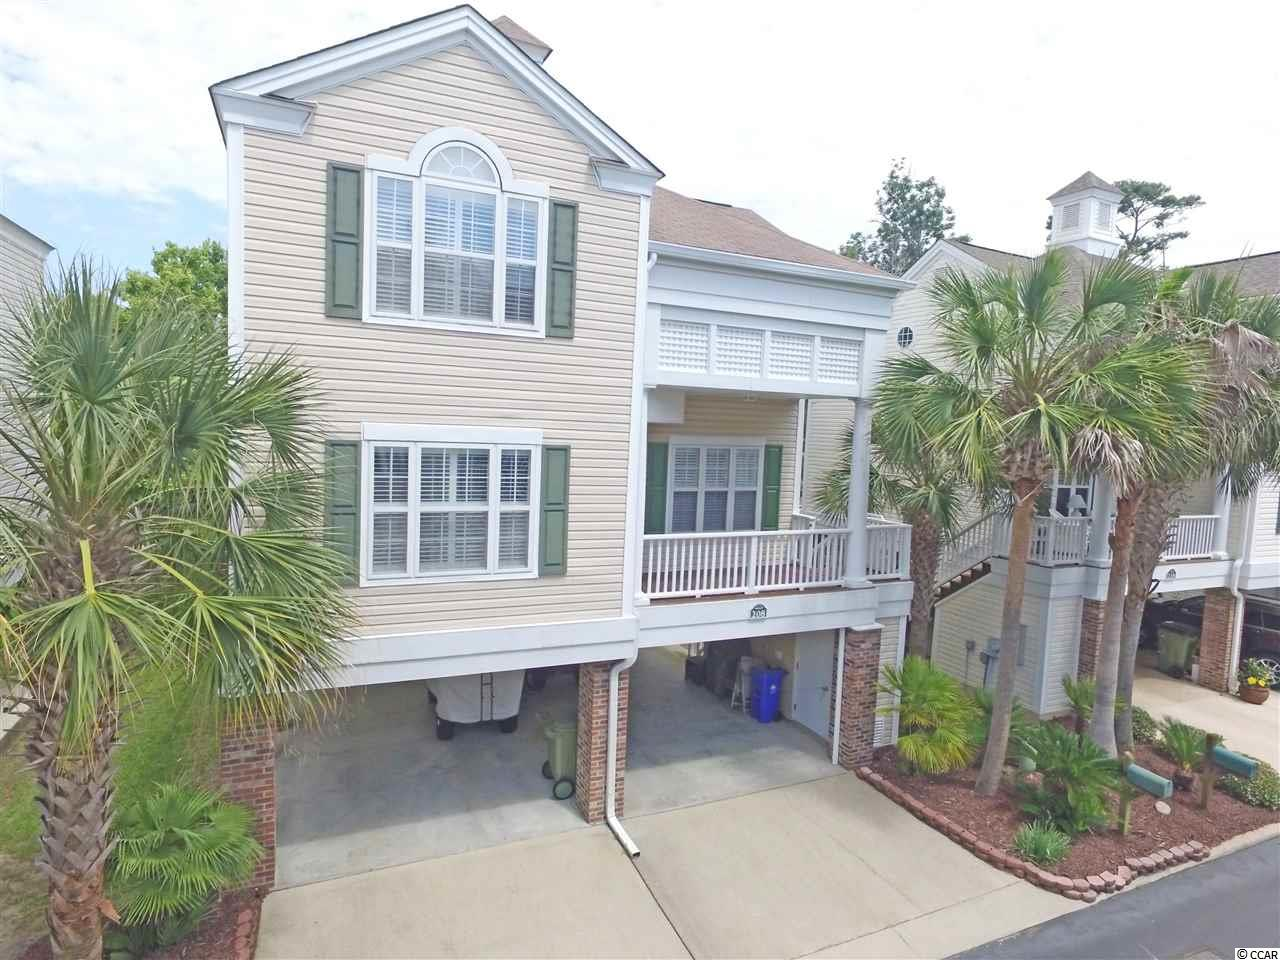 Don't miss this opportunity to own a beautifully remodeled Surfside Beach home at an affordable price in the  desirable Ocean Oaks community! 4 beds, 3 full baths, and a short walk or golf cart ride to the shores of the Atlantic Ocean in a desirable section of Surfside Beach. The kitchen has been completely renovated with high-end cabinetry, granite counter tops and stainless appliances. The living room, with hardwood floors, is spacious with lots of natural light and flows directly into an area for formal dining or entertaining with family and friends. The large master suite is upstairs, highlighted by a very spacious master bath with a tile shower featuring heavy glass doors. There is ample storage throughout the home along with plenty of room underneath for golf carts and beach supplies. After enjoying a day on the beach, relax at one of the many restaurants within a short walking distance of the home. Park right next door!  Whether you are considering a vacation home or a permanent residence, if you are looking for a turn-key property on the coast, you'll want to visit this house in sunny Surfside Beach.